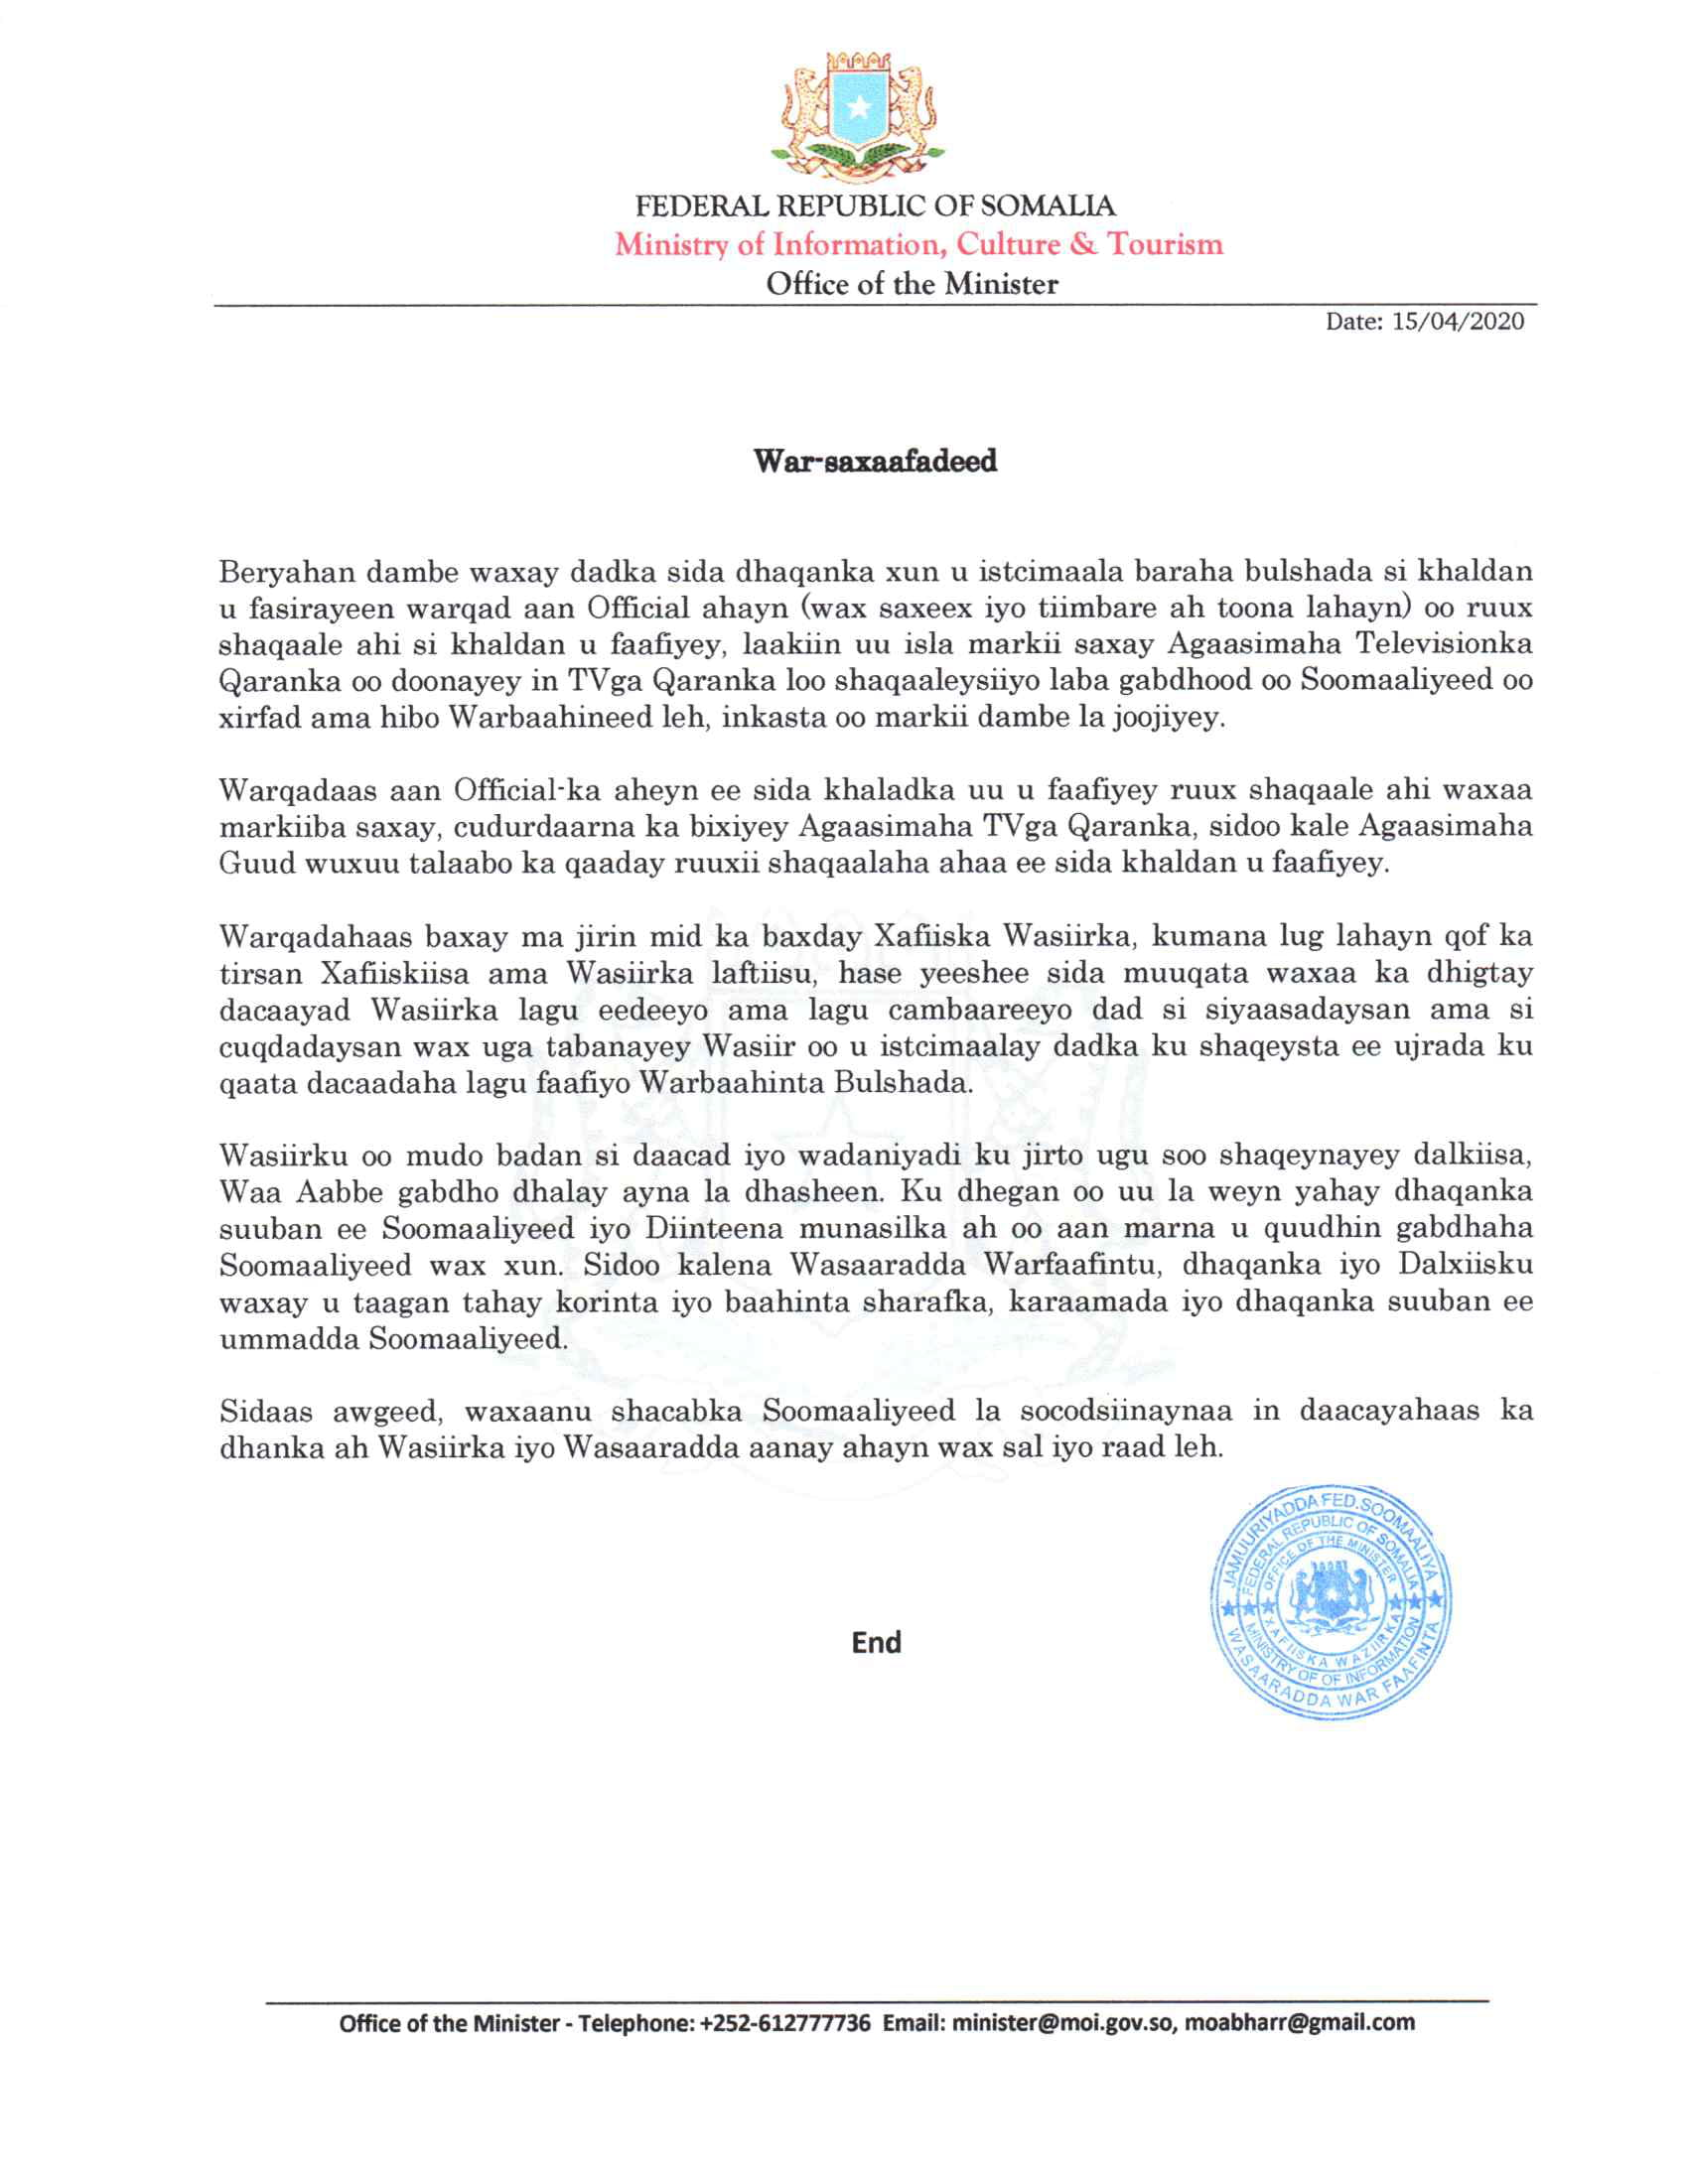 PRESS RELEASE Mogadishu, 15 April 2020